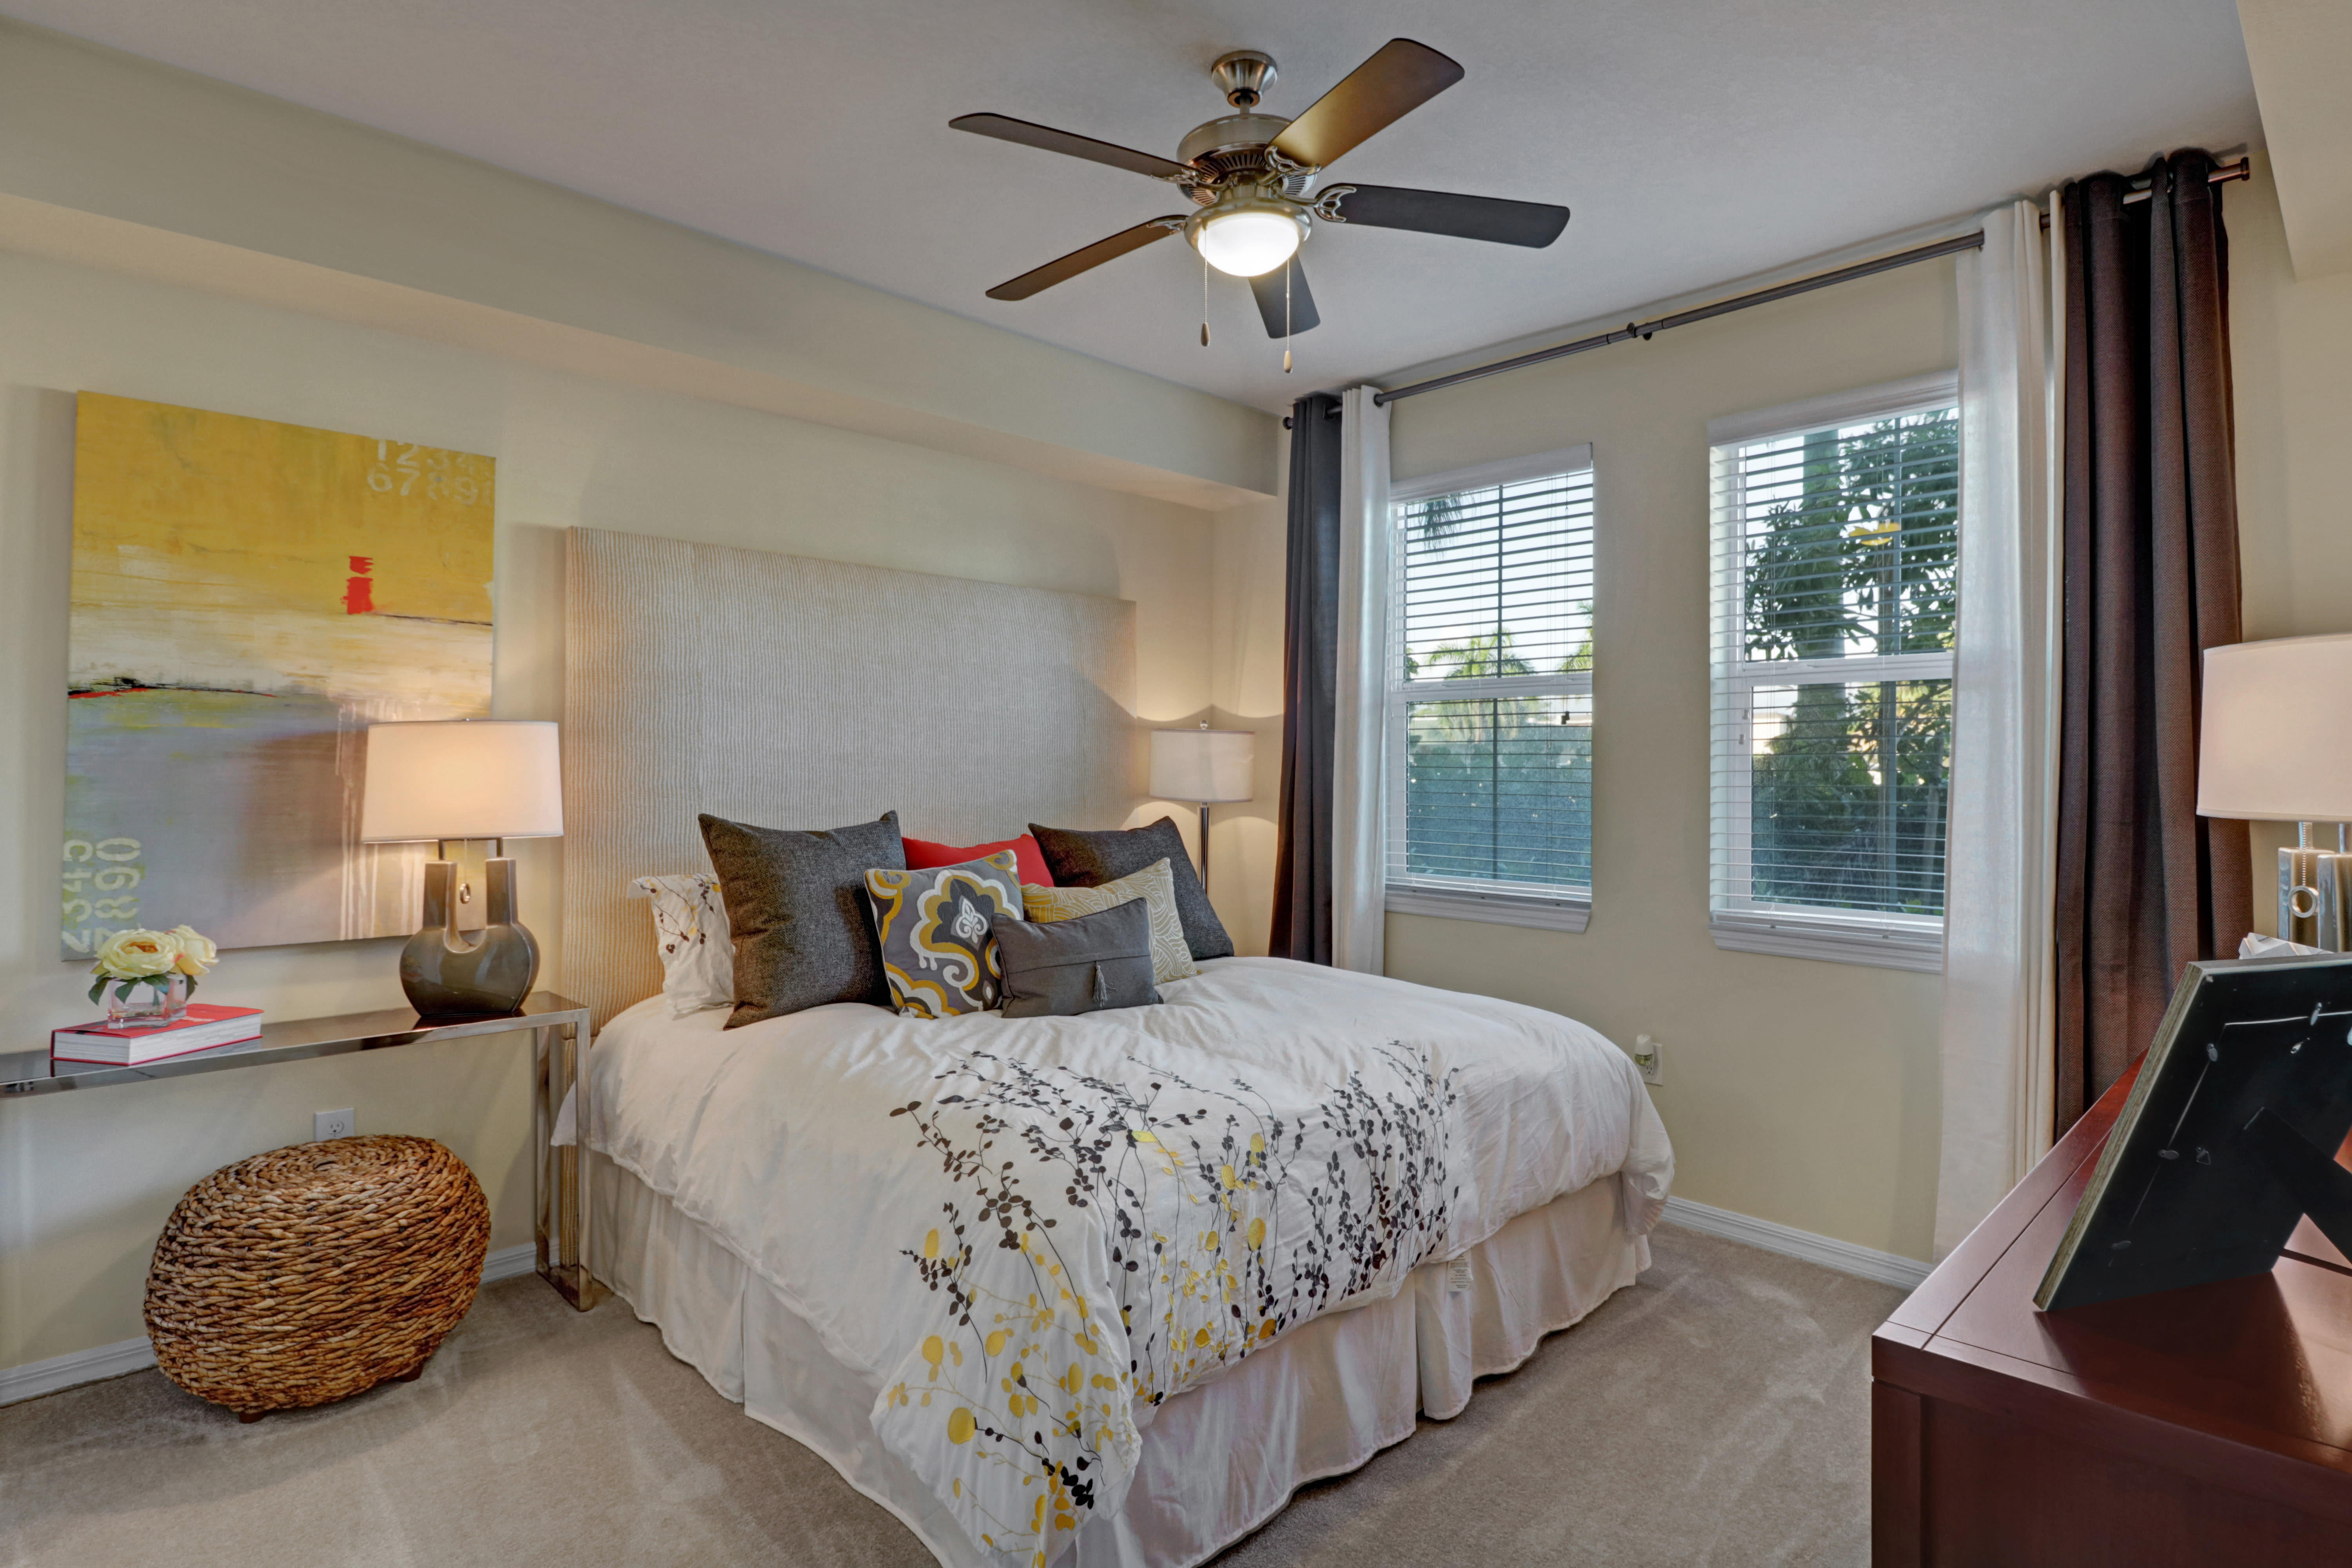 Bedroom at Linden Pointe features a ceiling fan and large windows